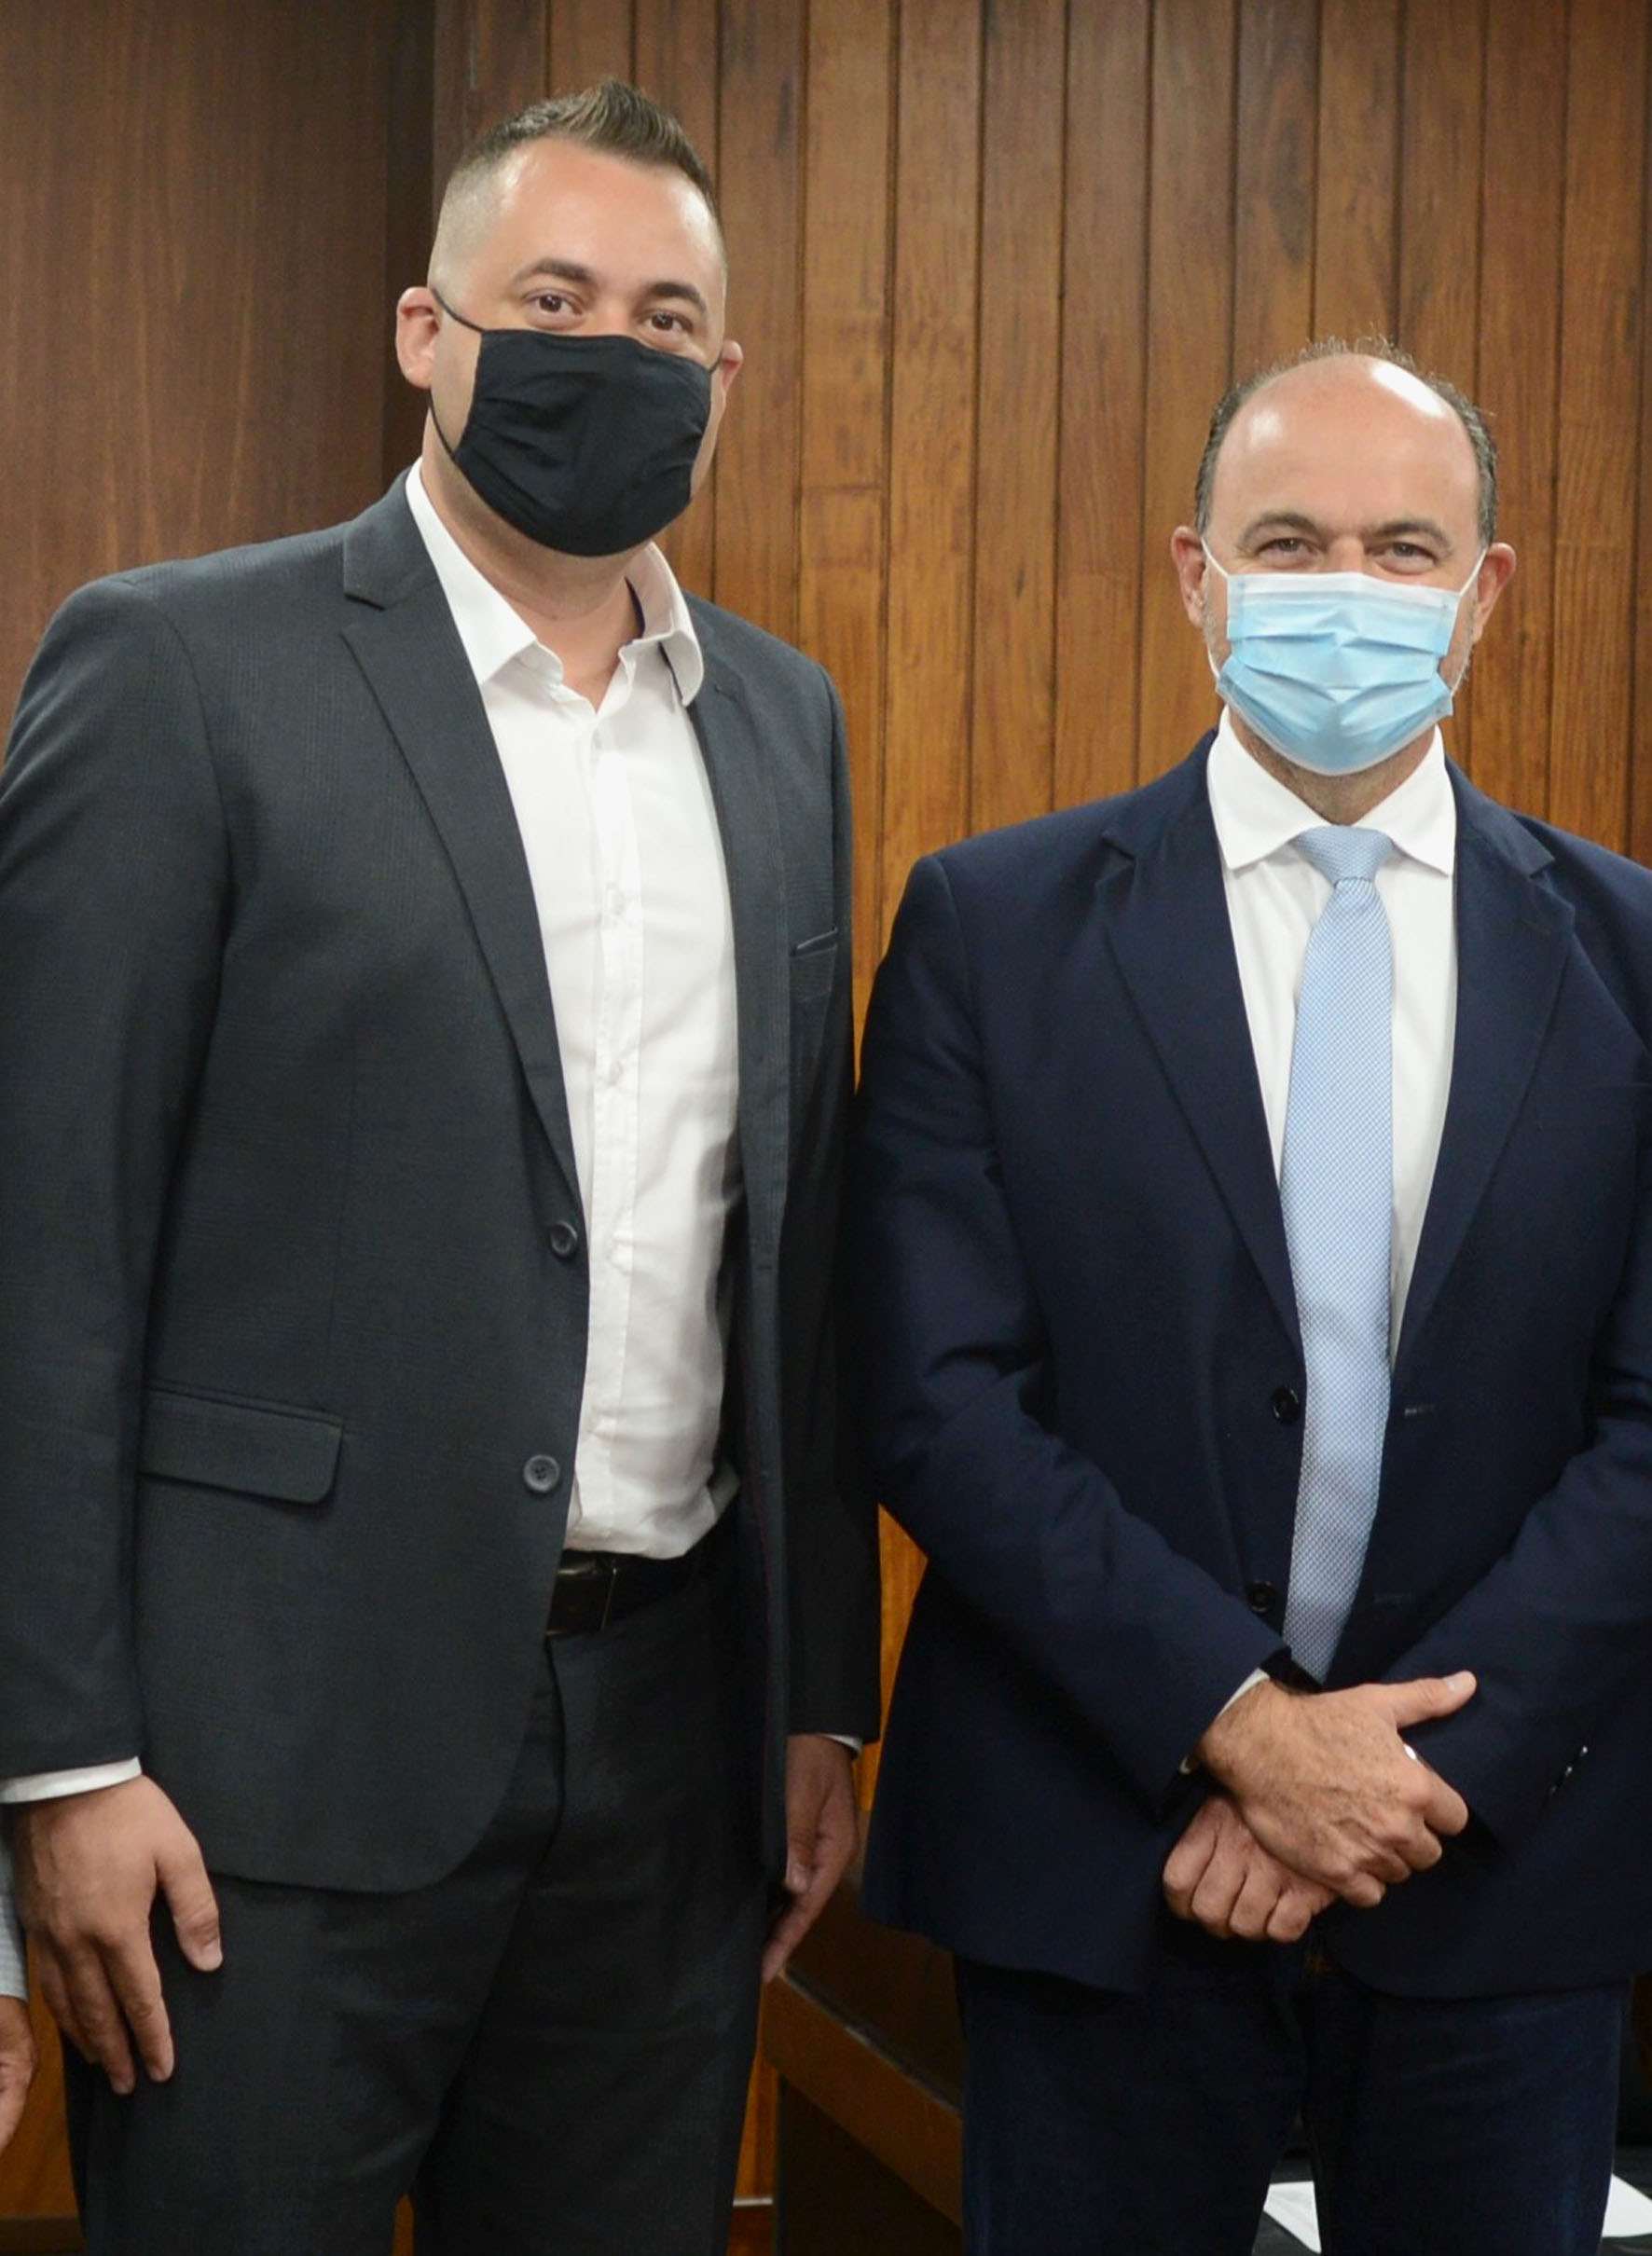 Luciano Peres e Ricardo Madalena<a style='float:right' href='https://www3.al.sp.gov.br/repositorio/noticia/N-02-2021/fg261543.jpg' target=_blank><img src='/_img/material-file-download-white.png' width='14px' alt='Clique para baixar a imagem'></a>